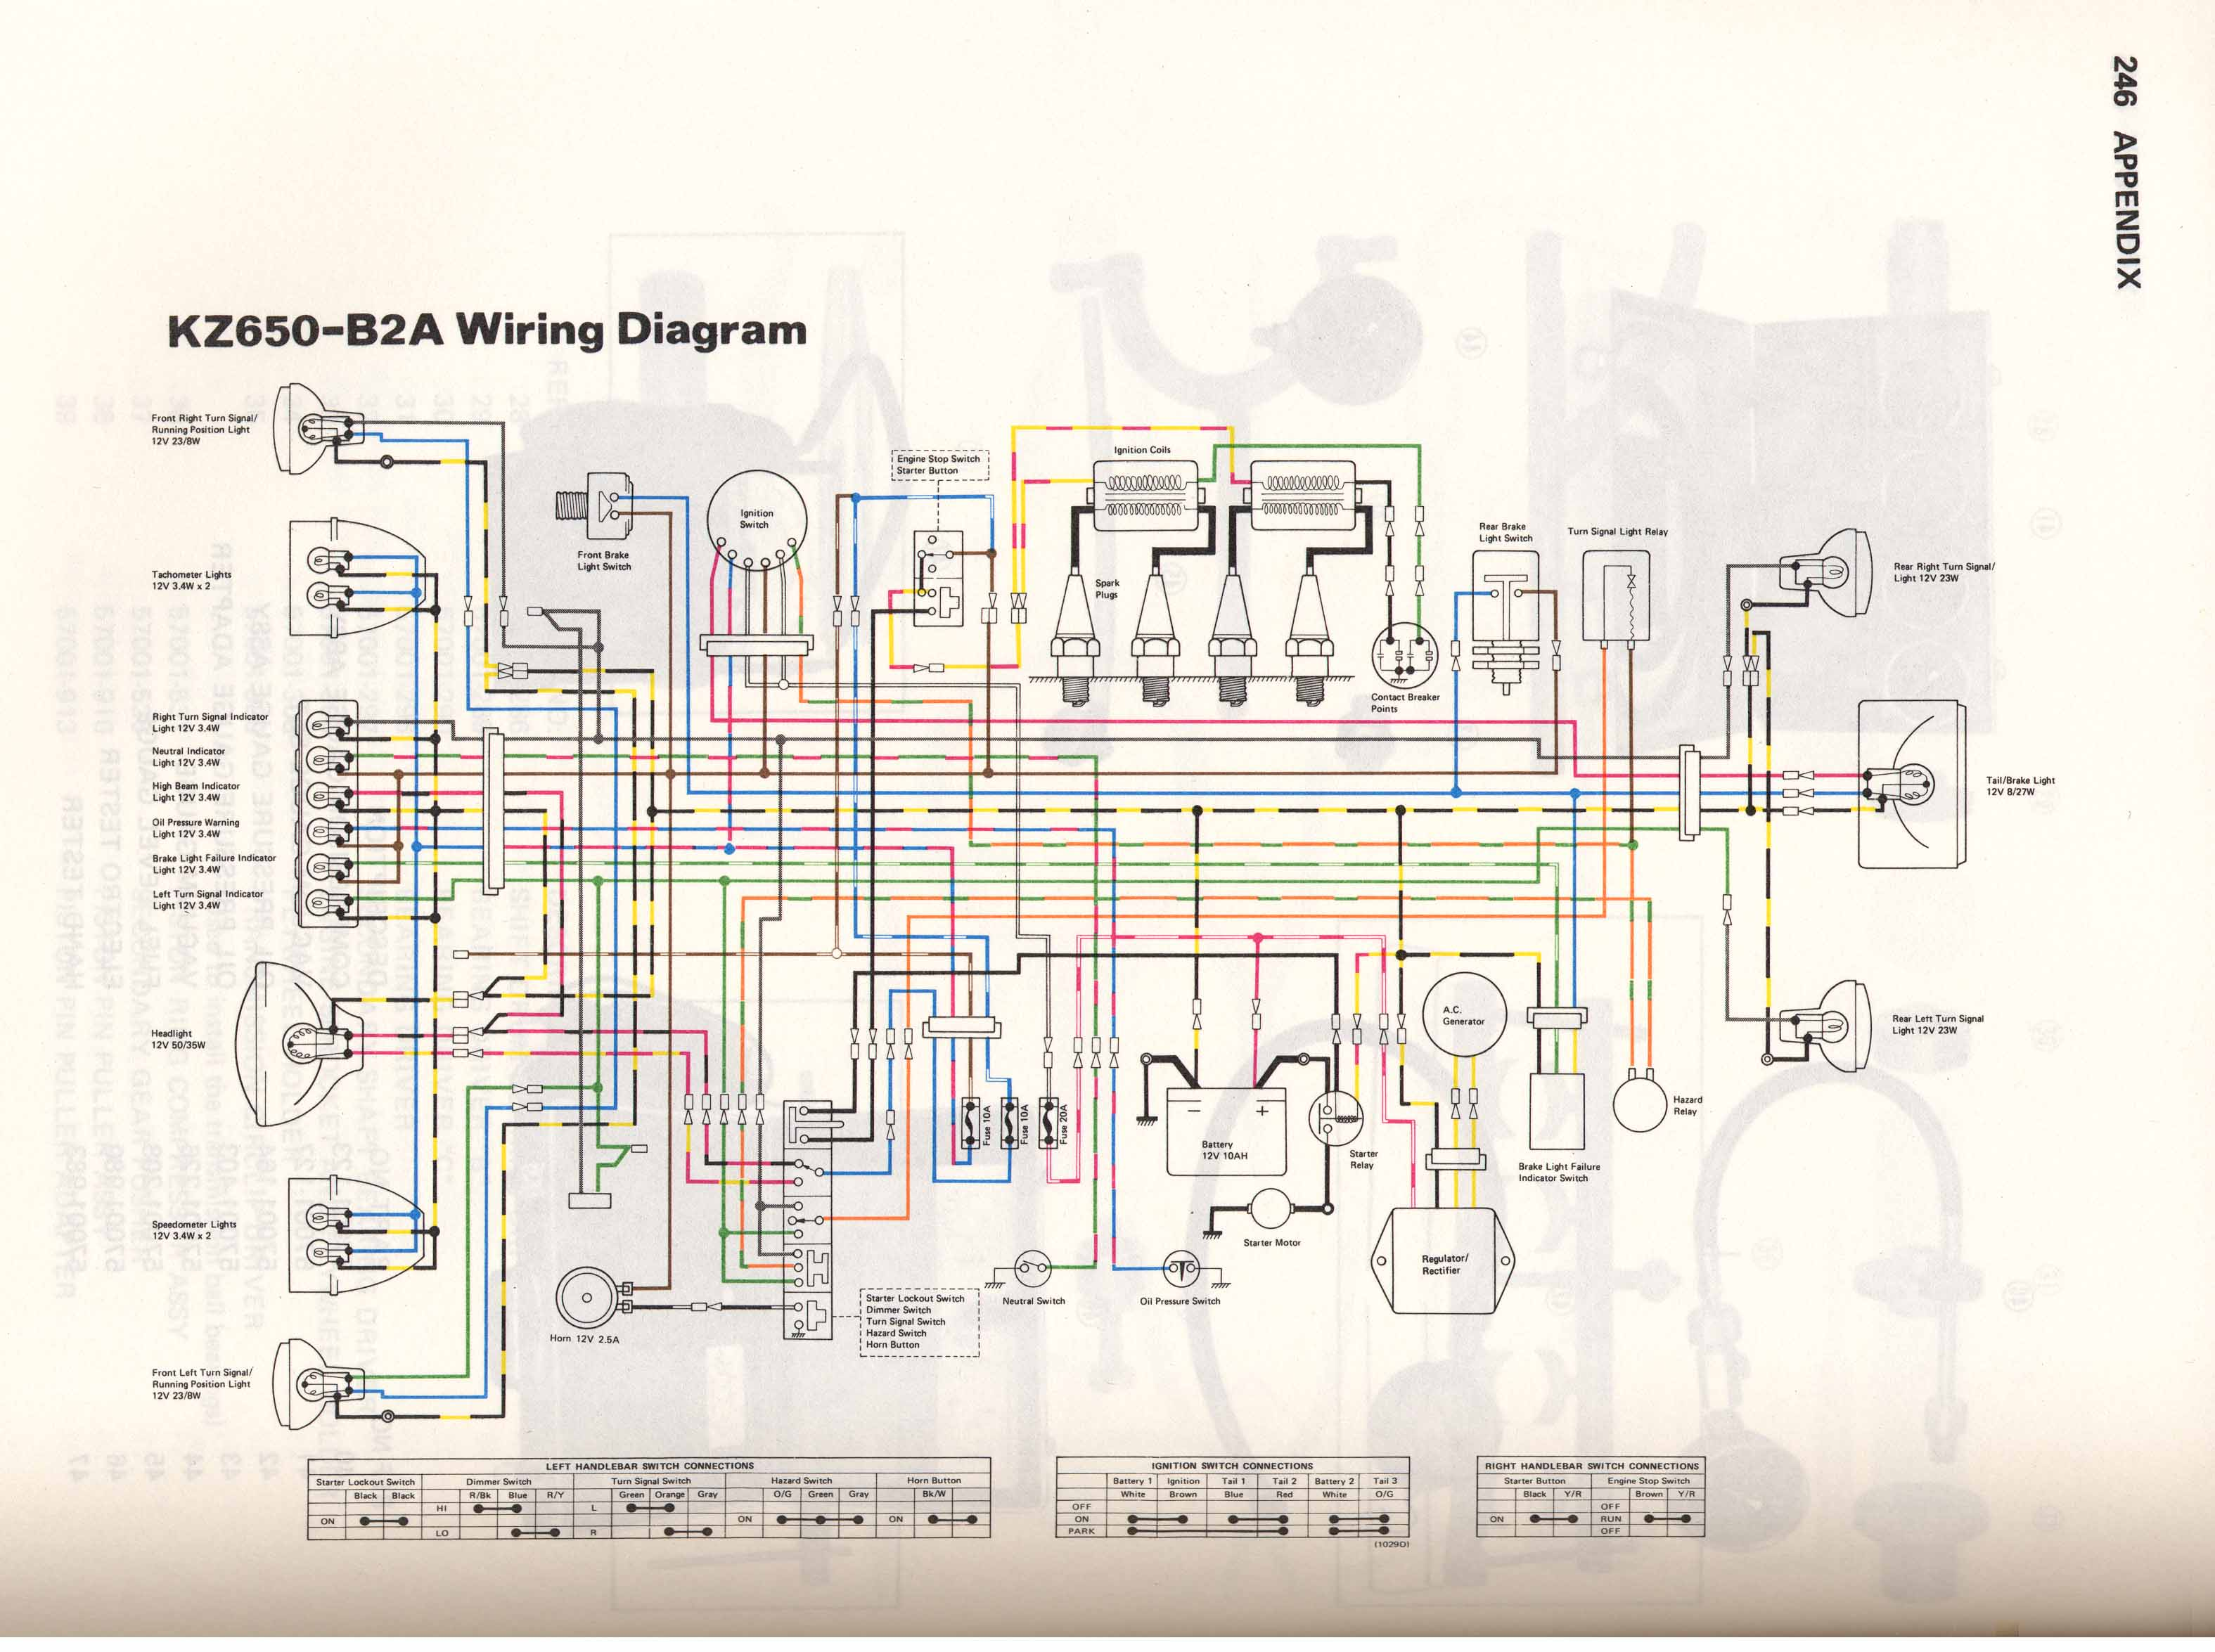 1978 z650 wiring diagram how to wire a generator transfer switch position kz650 info diagrams